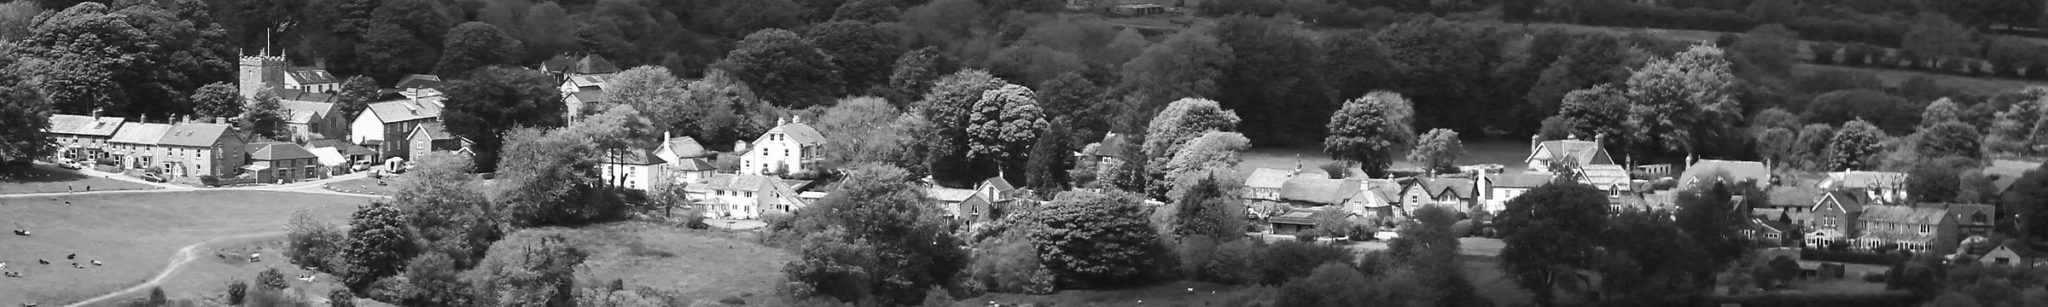 Black & White Image of Belstone from Cosdon